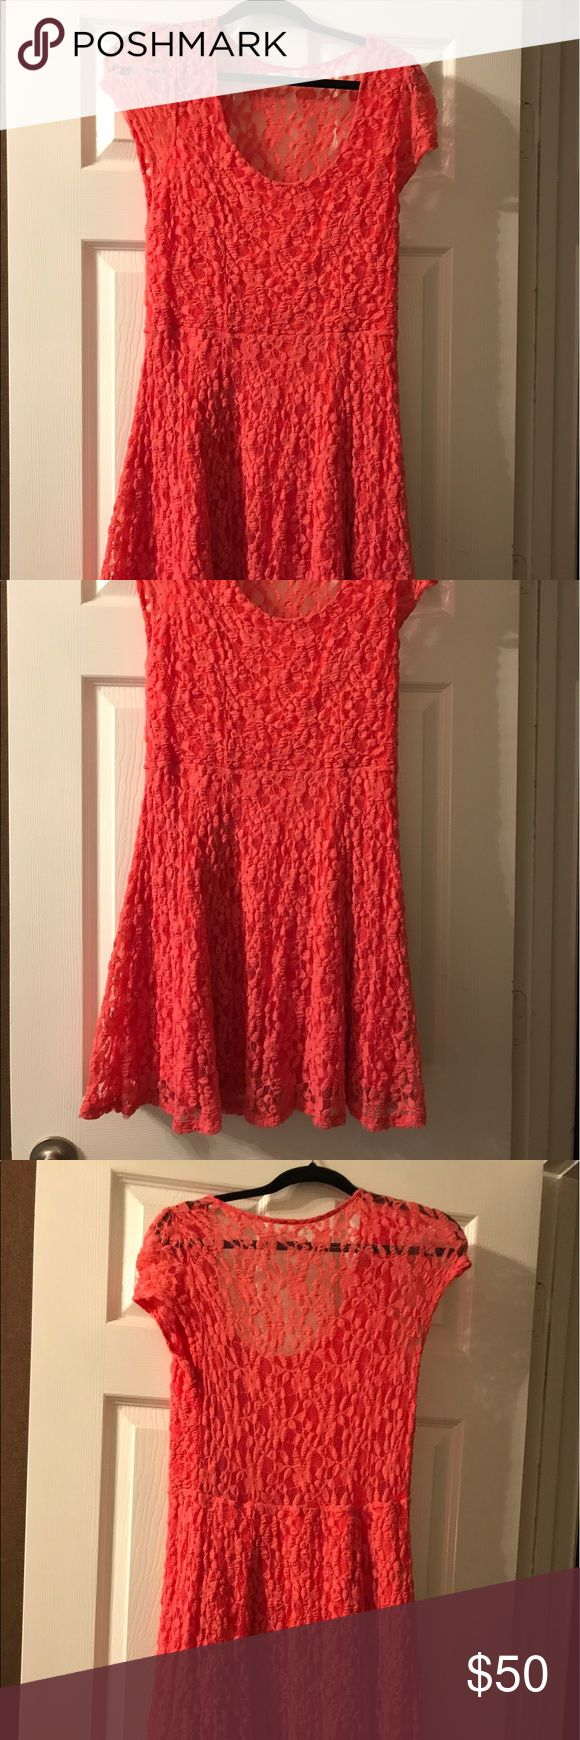 Urban Outfitters coral lace dress Beautiful coral lace dress from Urban Outfitters. Everything except the back is lined. I wore it with a coral tank top. Very cute and comfortable too. Urban Outfitters Dresses Mini